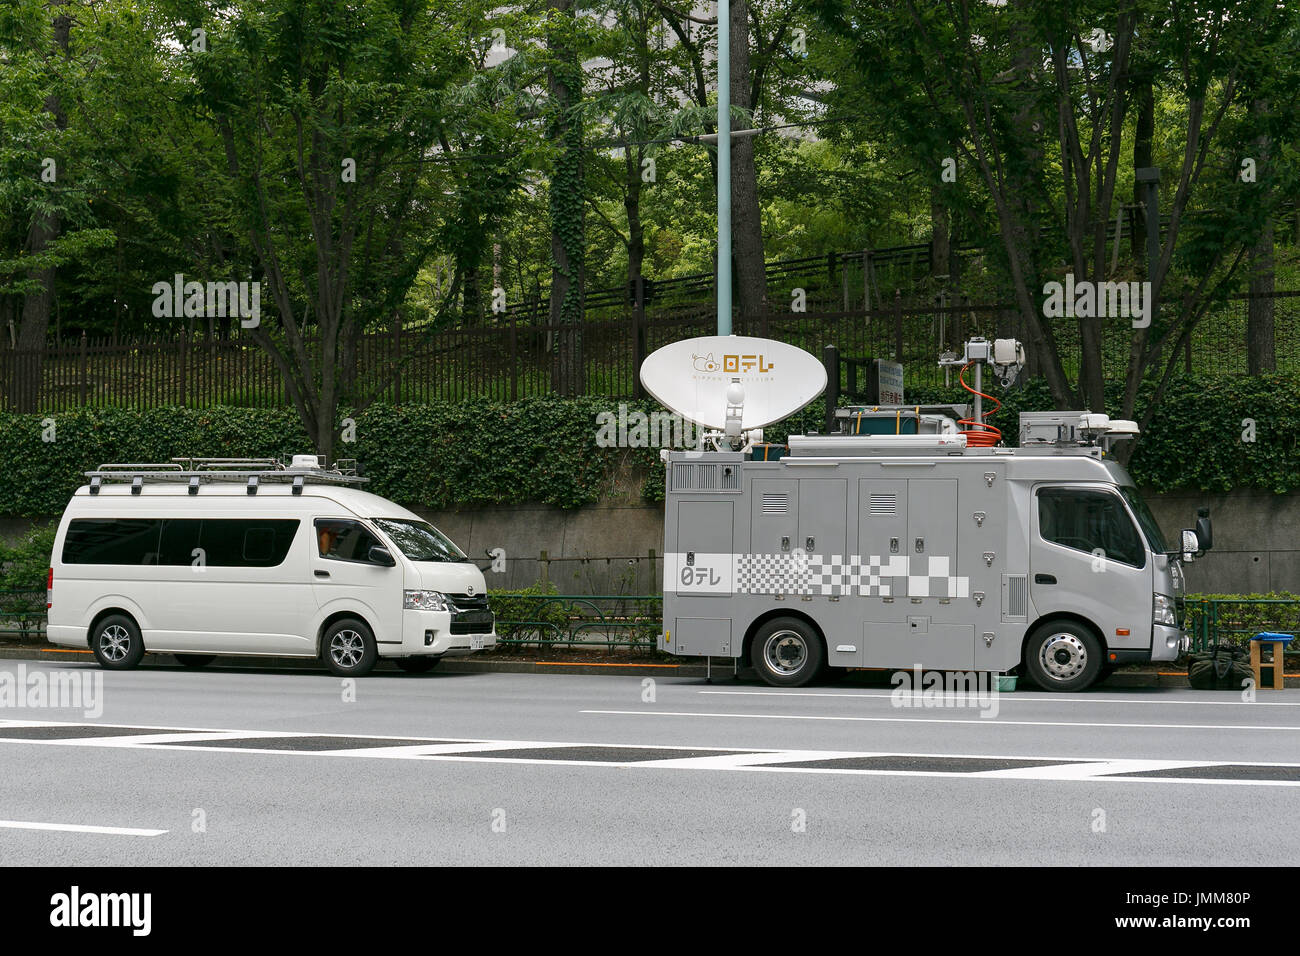 A live news TV satellite truck is seen outside the Ministry